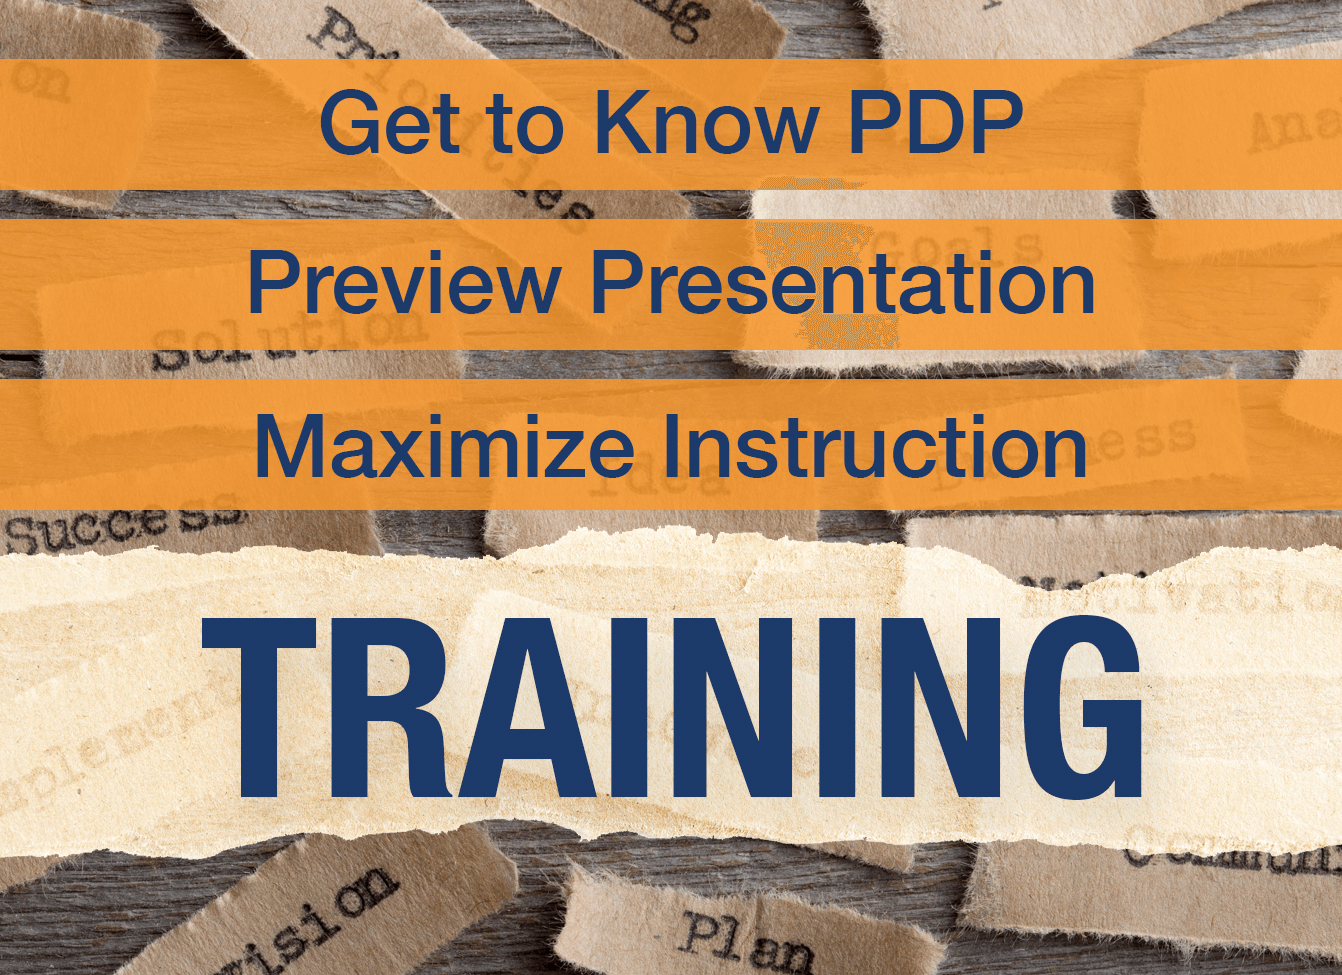 PDP Textbook Training Opportunities